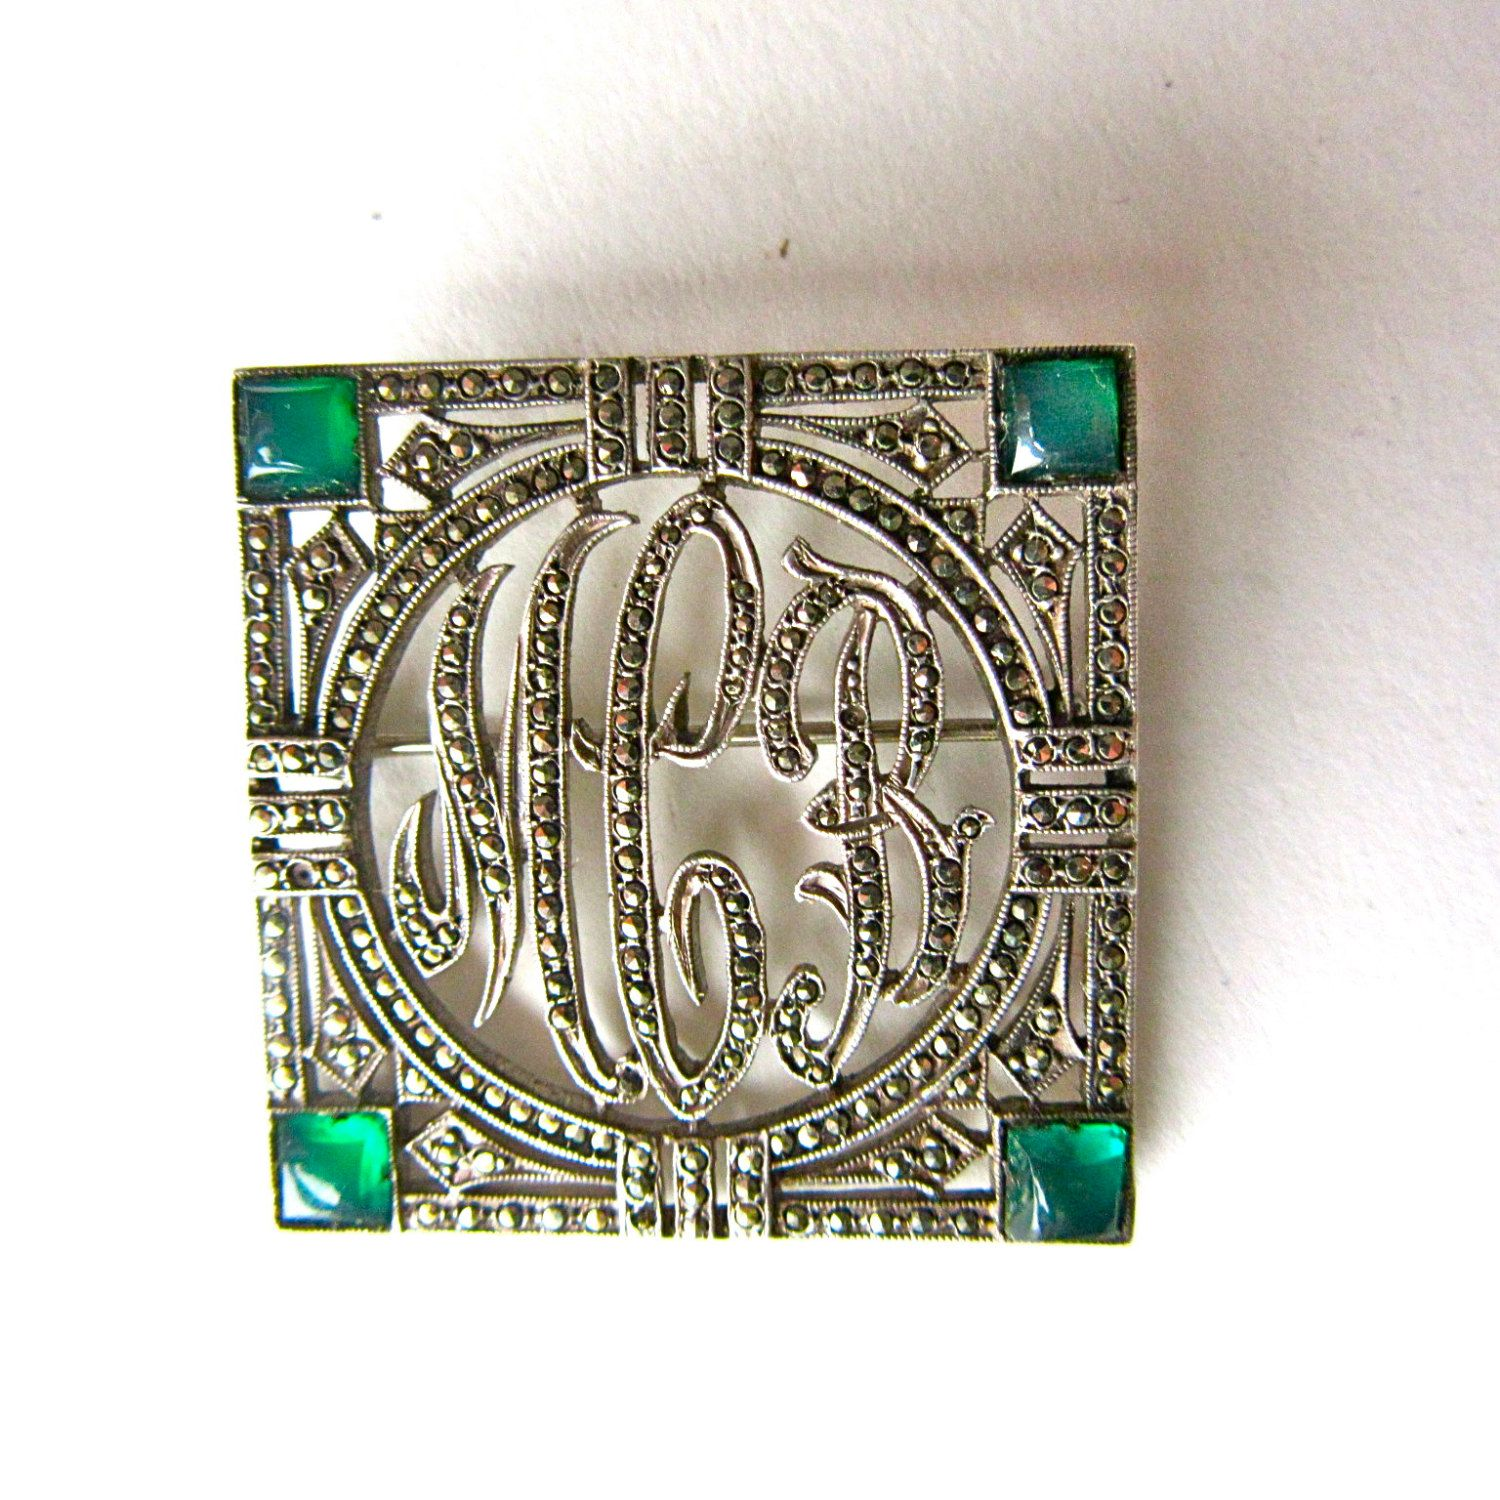 Ciner Silver Marcasite Brooch - Green Stones - Art Deco  Square Pin - 30s - Jewelry by StateAndMainVintage on Etsy